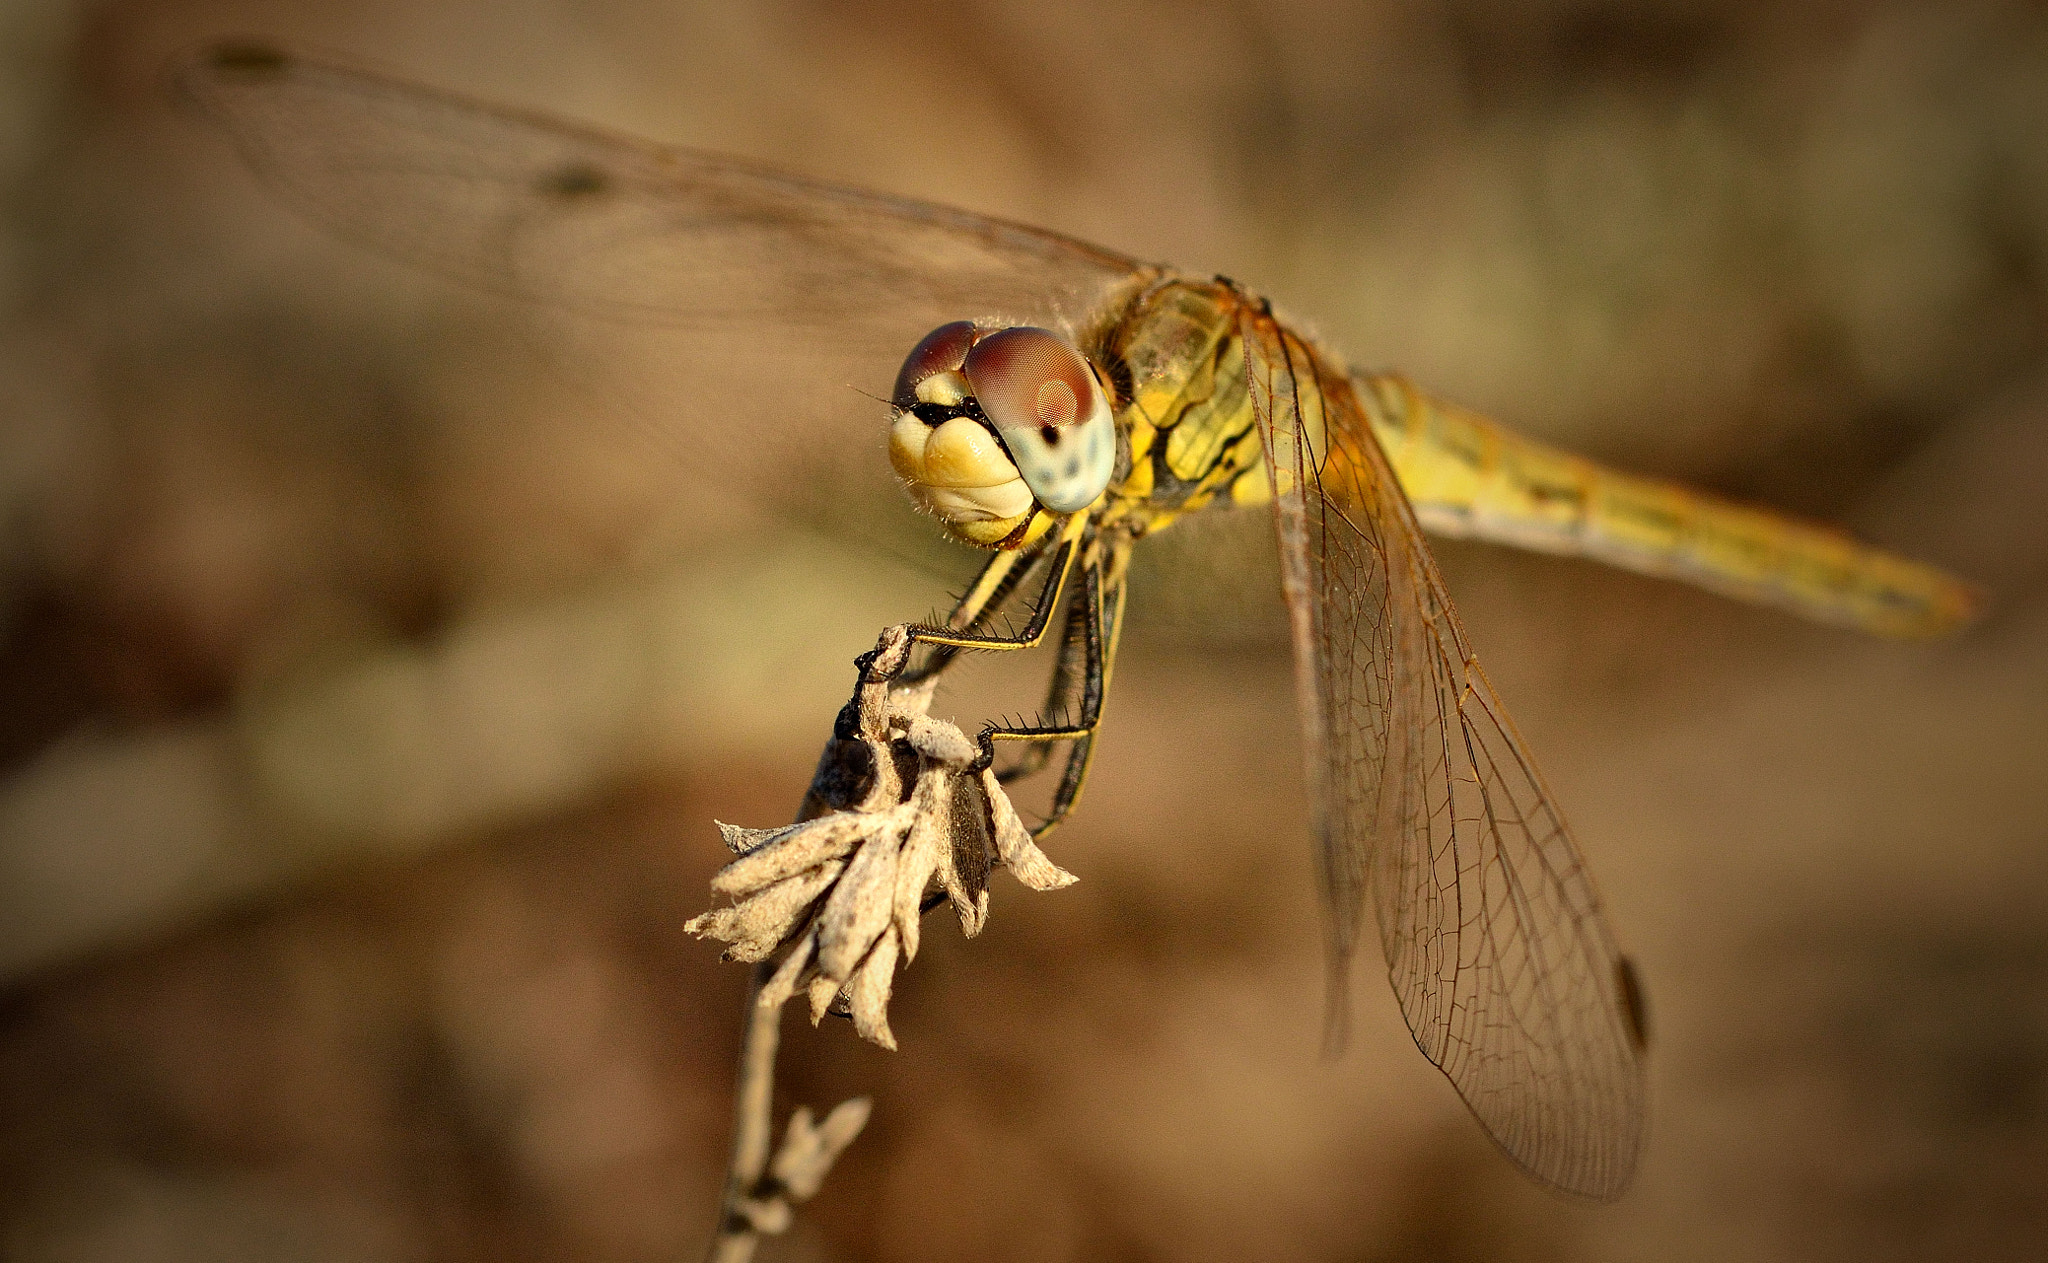 Photograph Kos Dragonfly by Steven Hindon on 500px